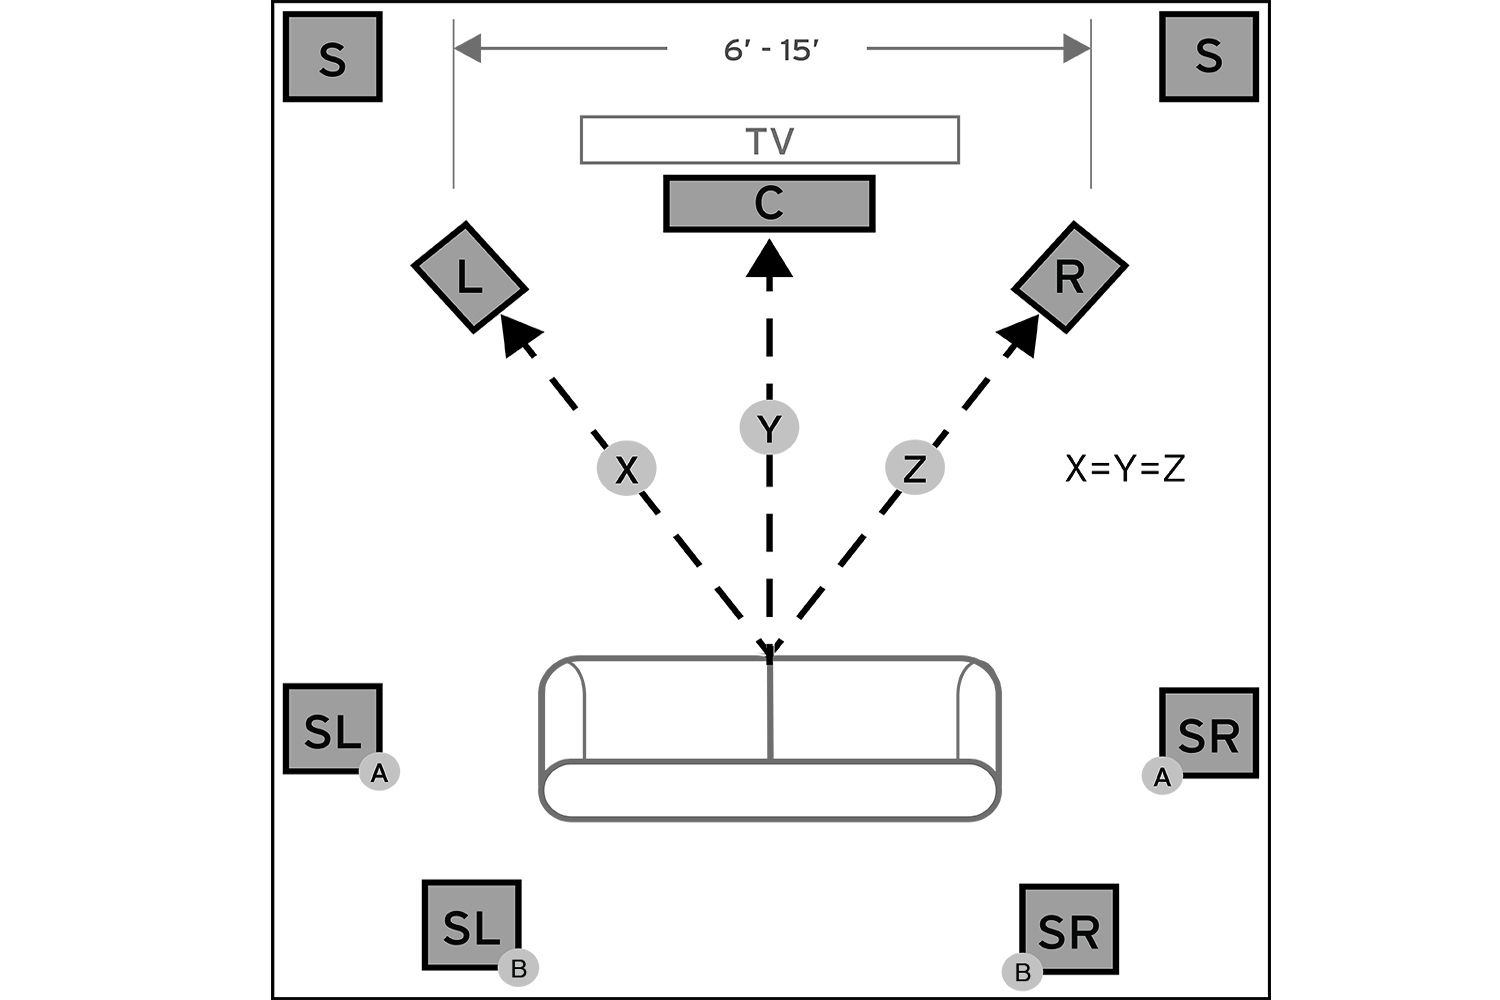 hight resolution of typical home theater av system diagram schematic diagrams plug for computer sound wiring diagram for computer